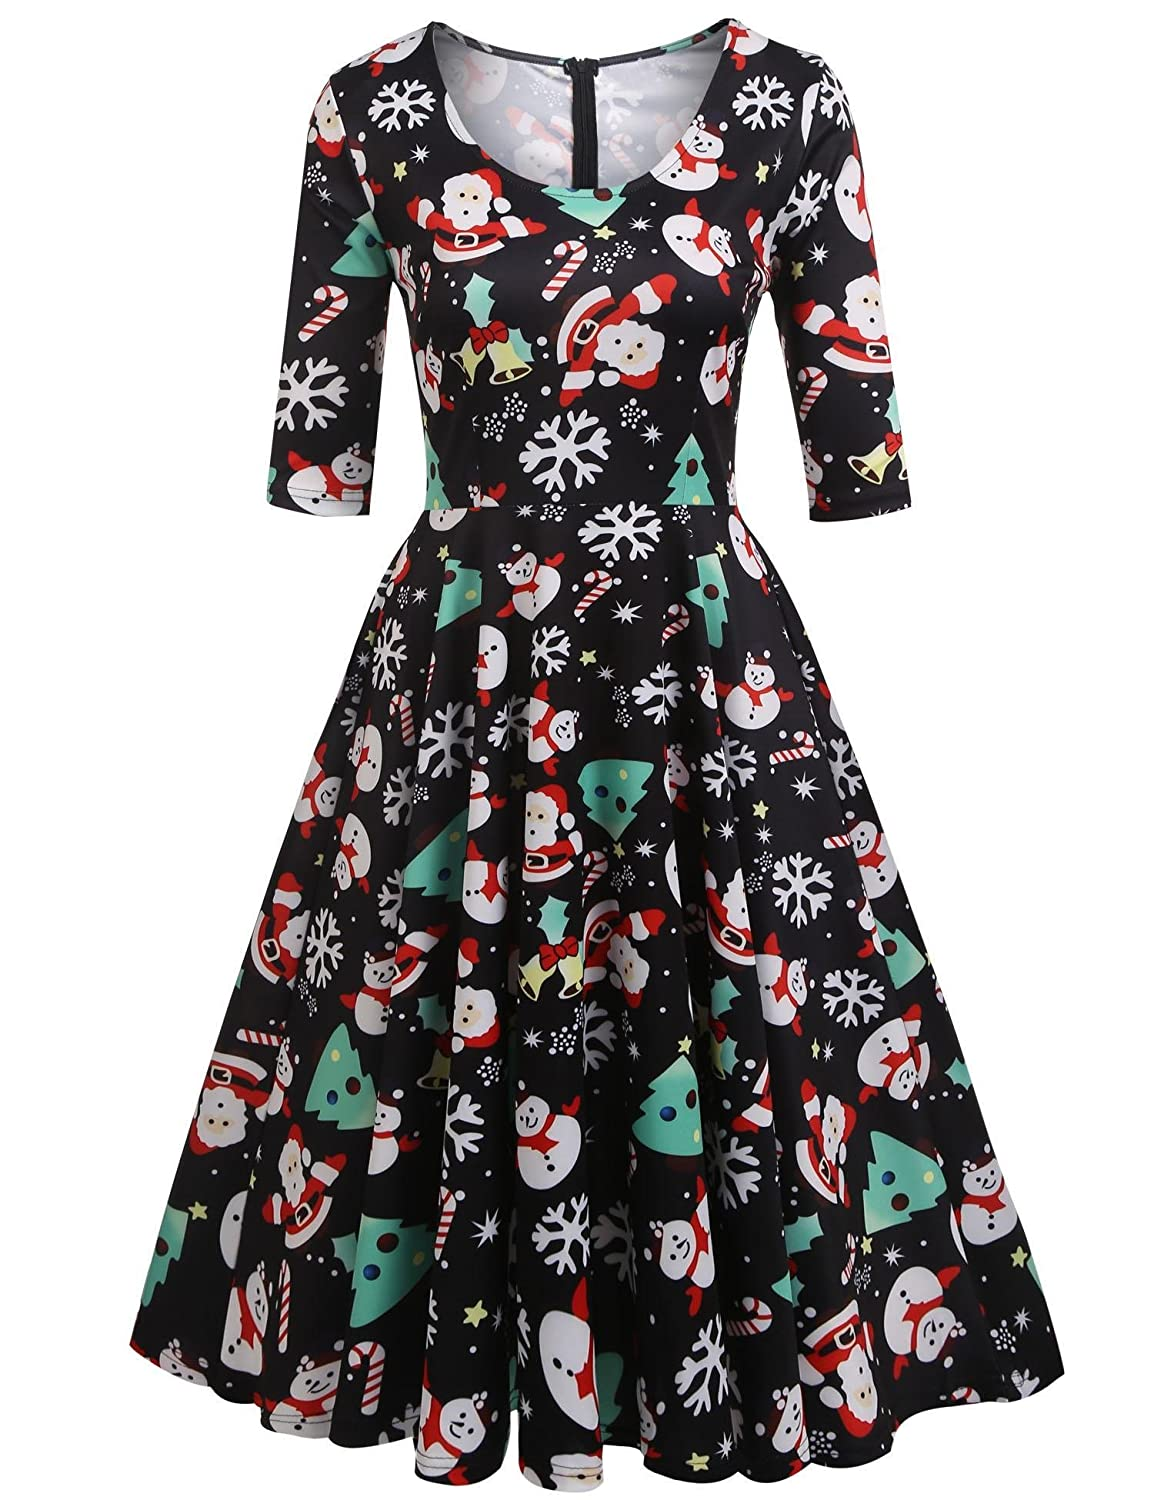 Vintage Christmas Gift Ideas for Women  Half Sleeve Swing Dress Flower Print A Line Tea Dress ELESOL Womens $36.59 AT vintagedancer.com